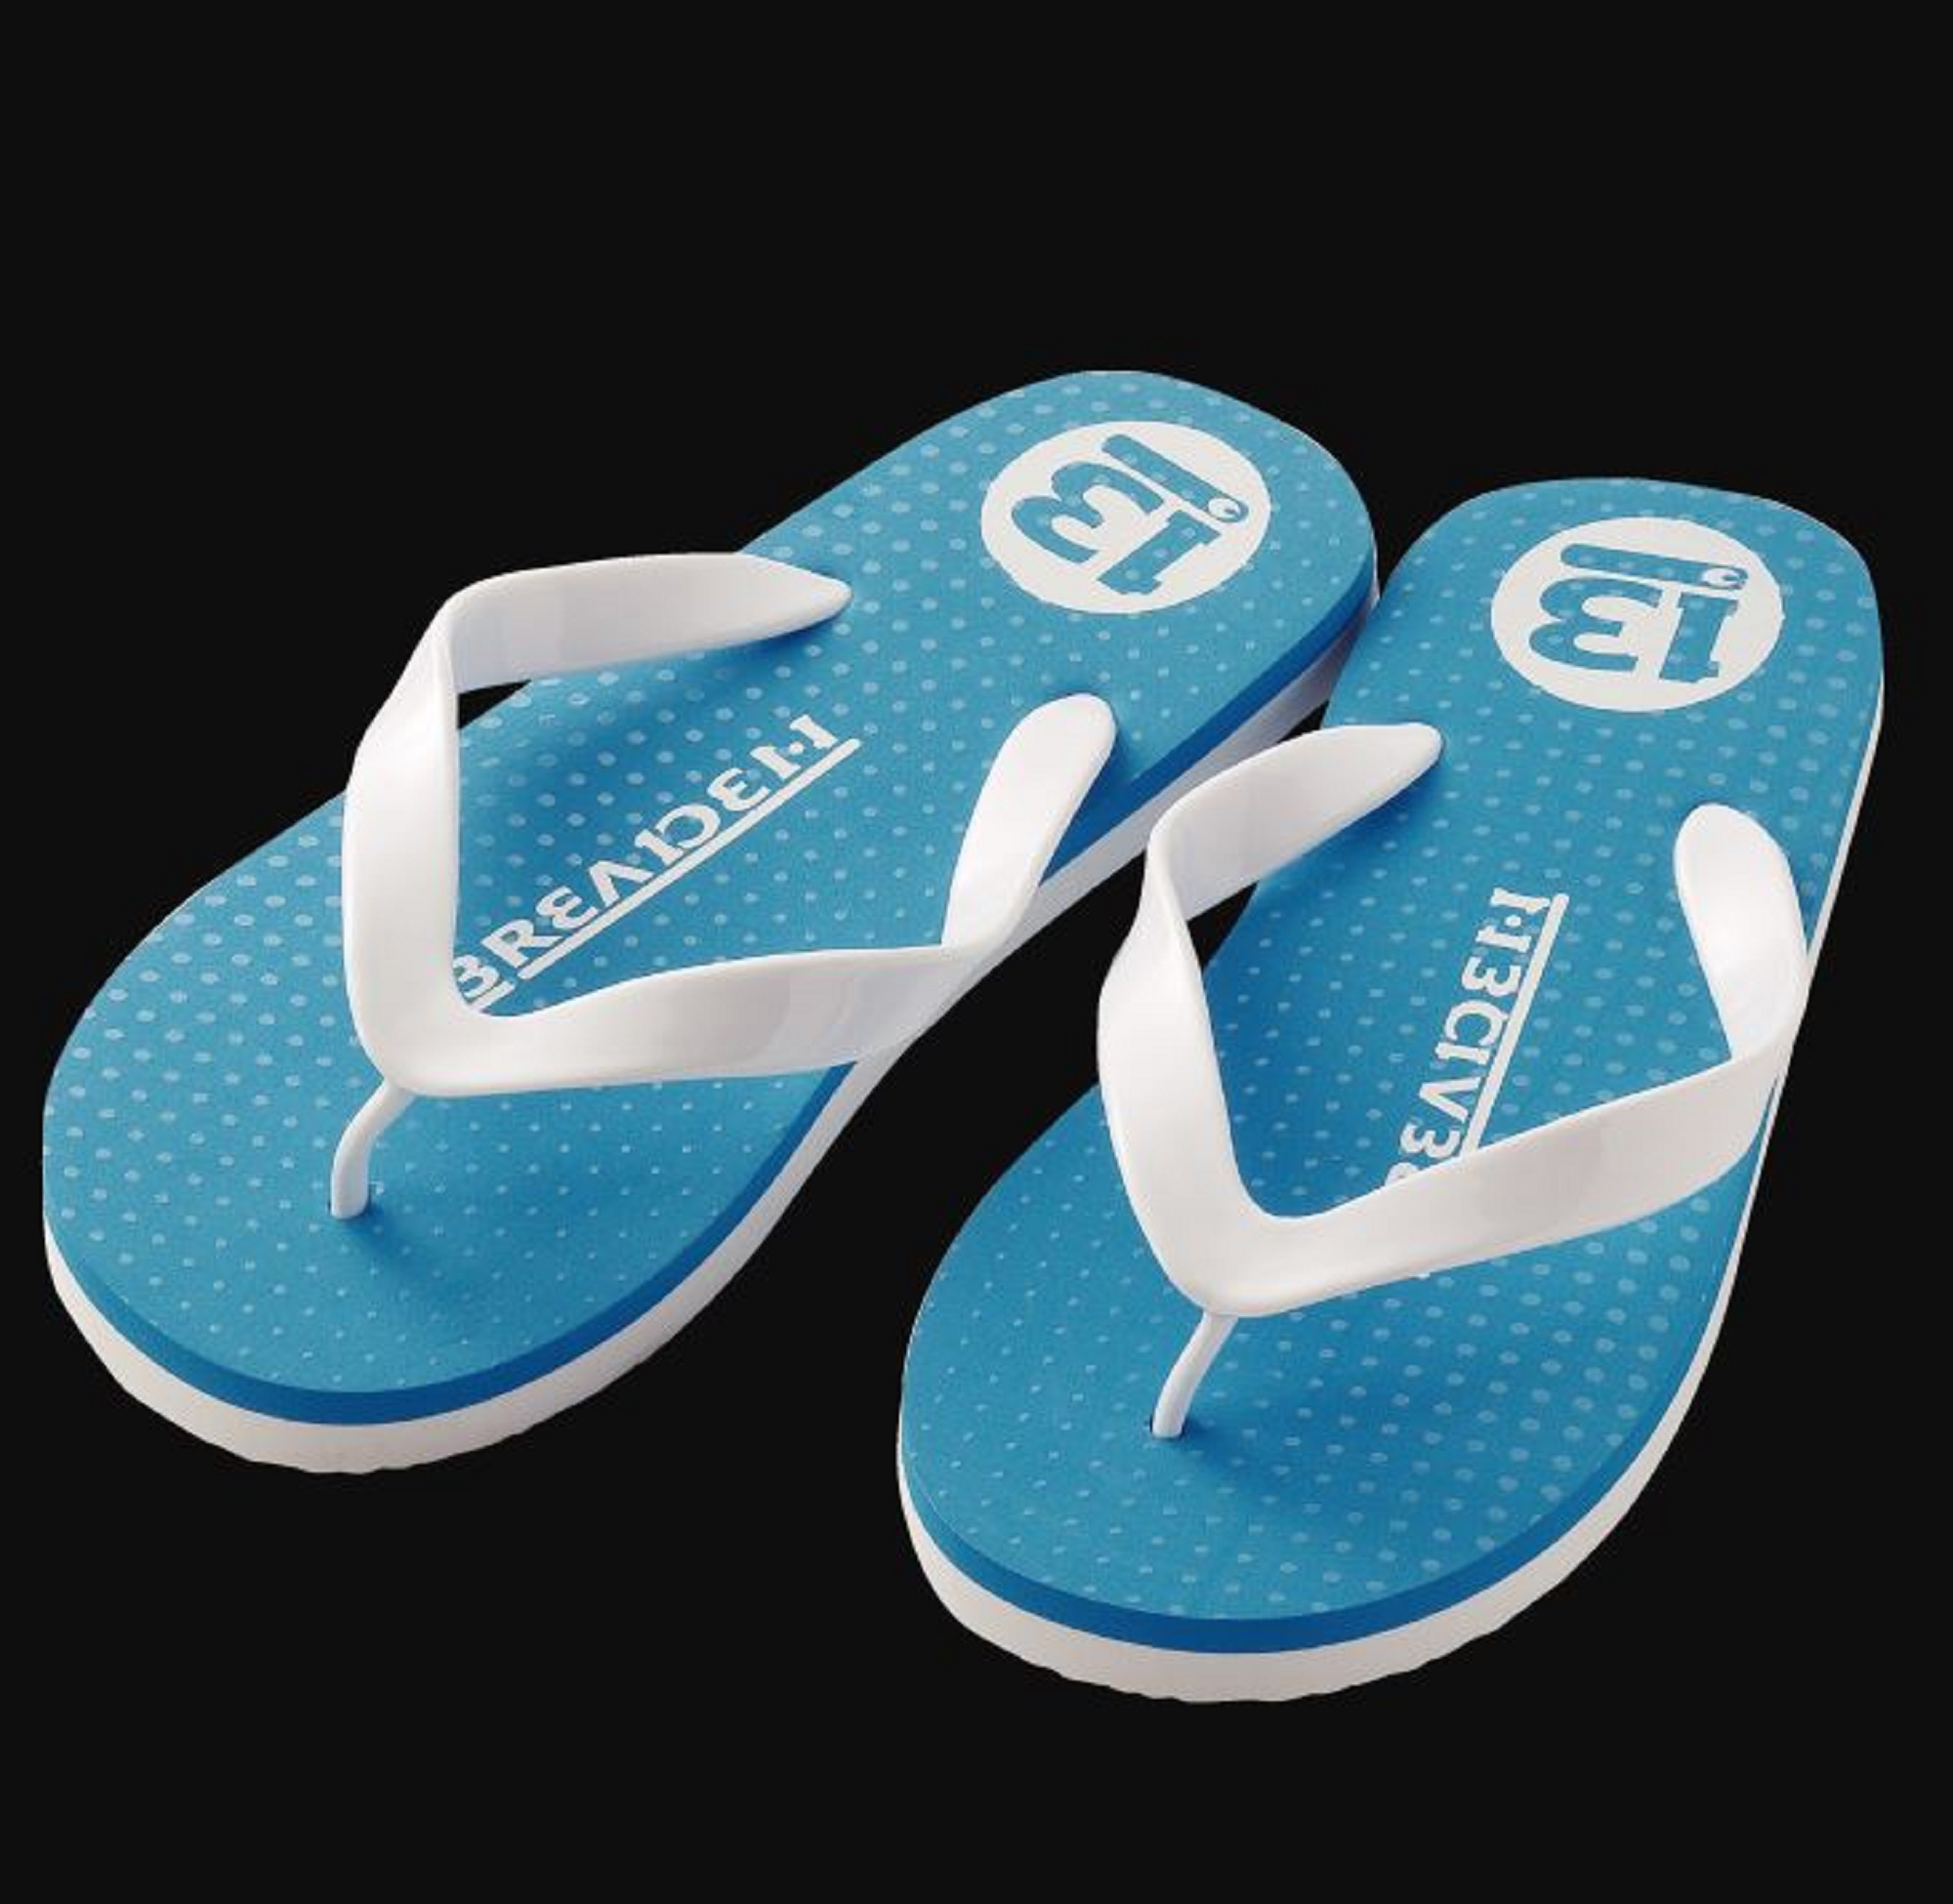 Breaden Beach Sandals Size 26cm 02 (7287)